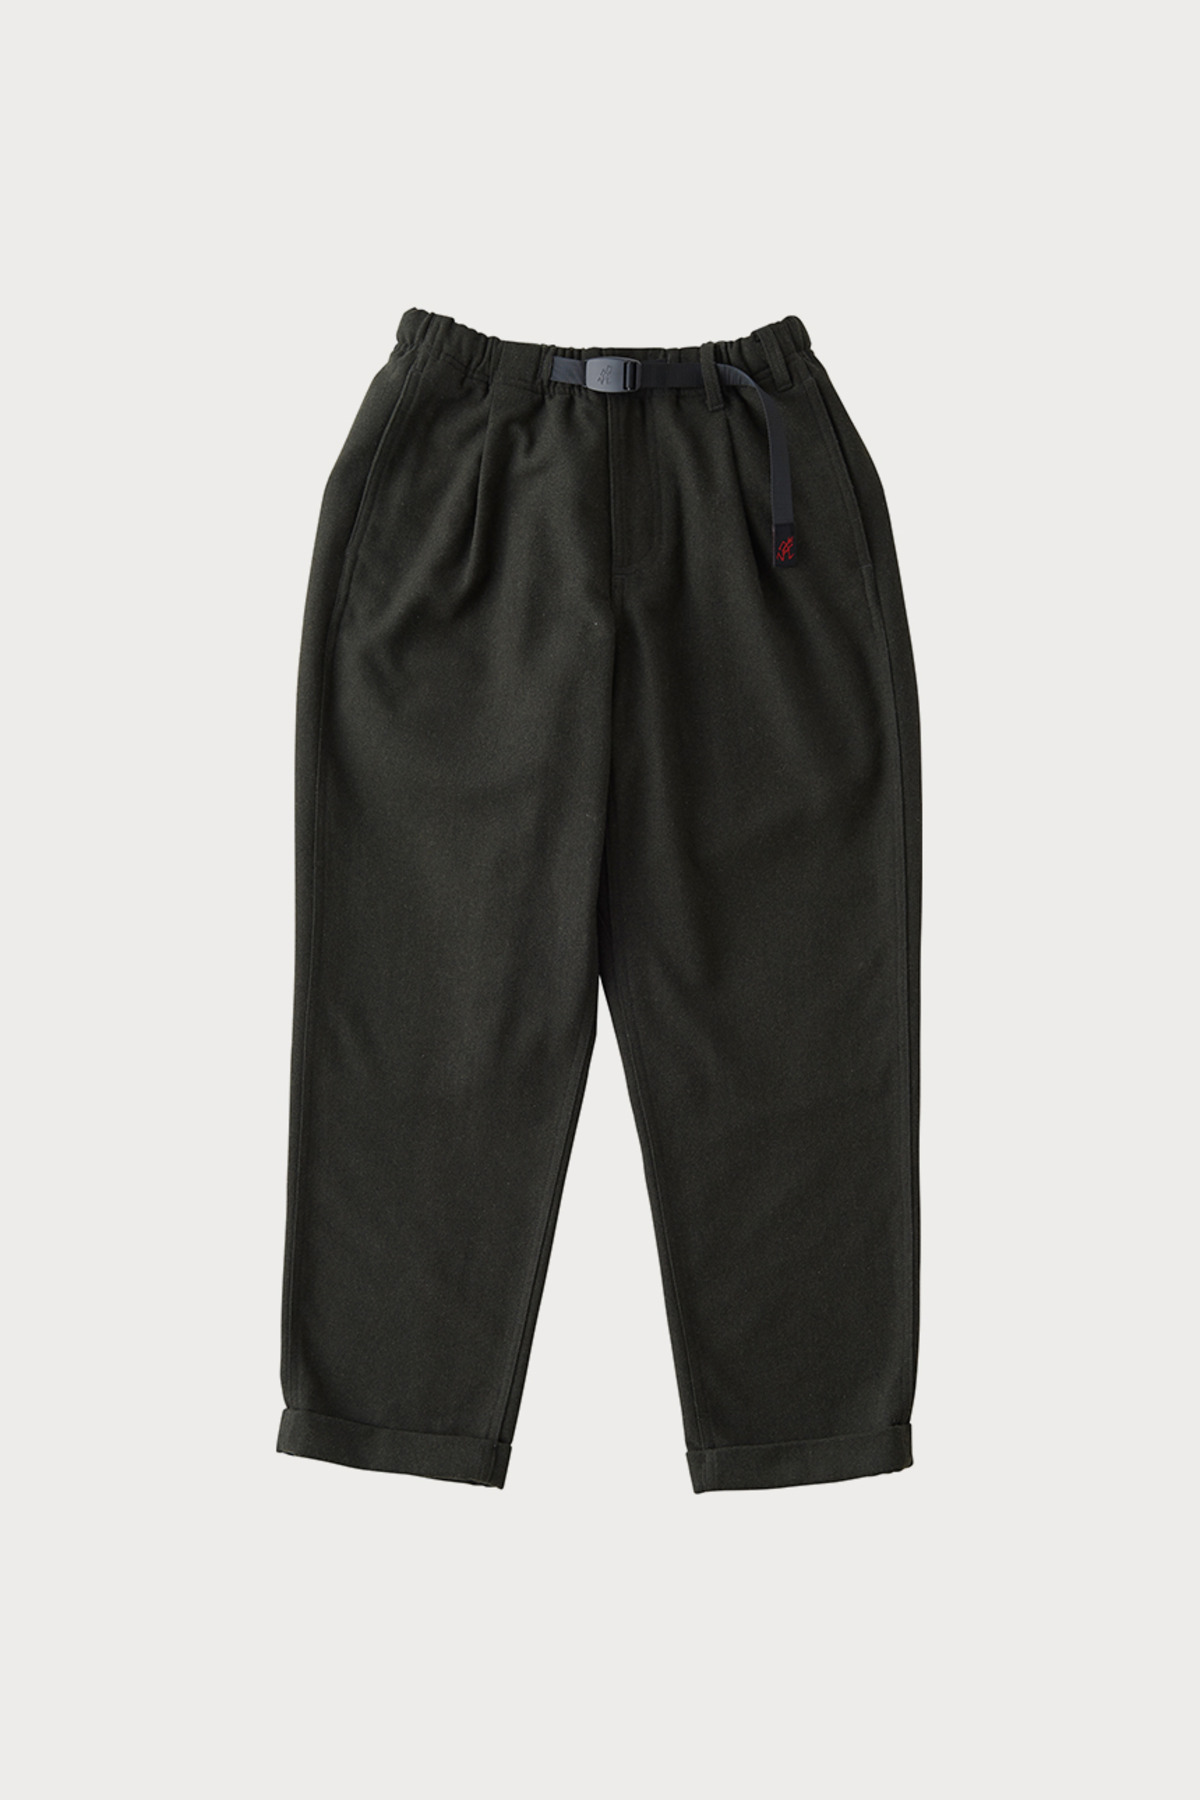 WOOL BLEND TUCK TAPERED PANTS DEEP OLIVE